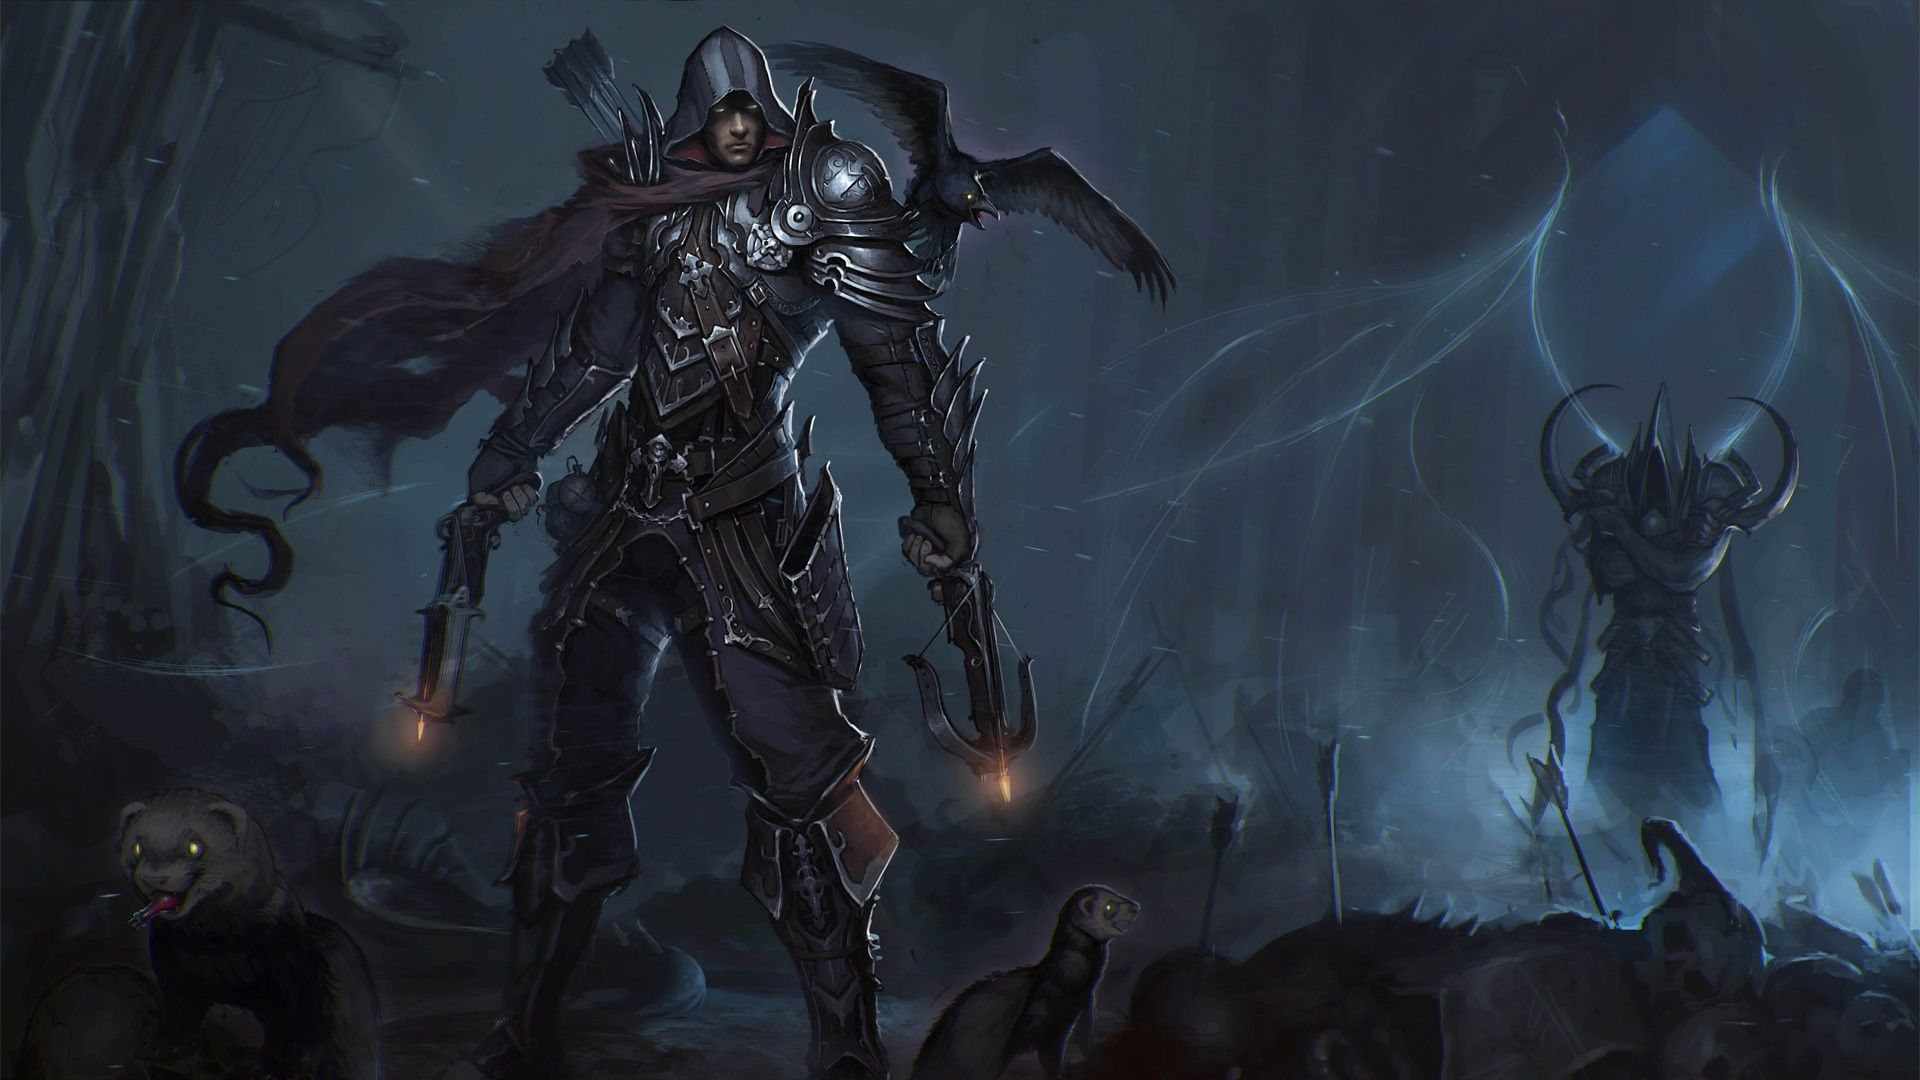 Wallpaper Diablo 3 Hunter Raven Crossbow Dark Armor Ruin Skull